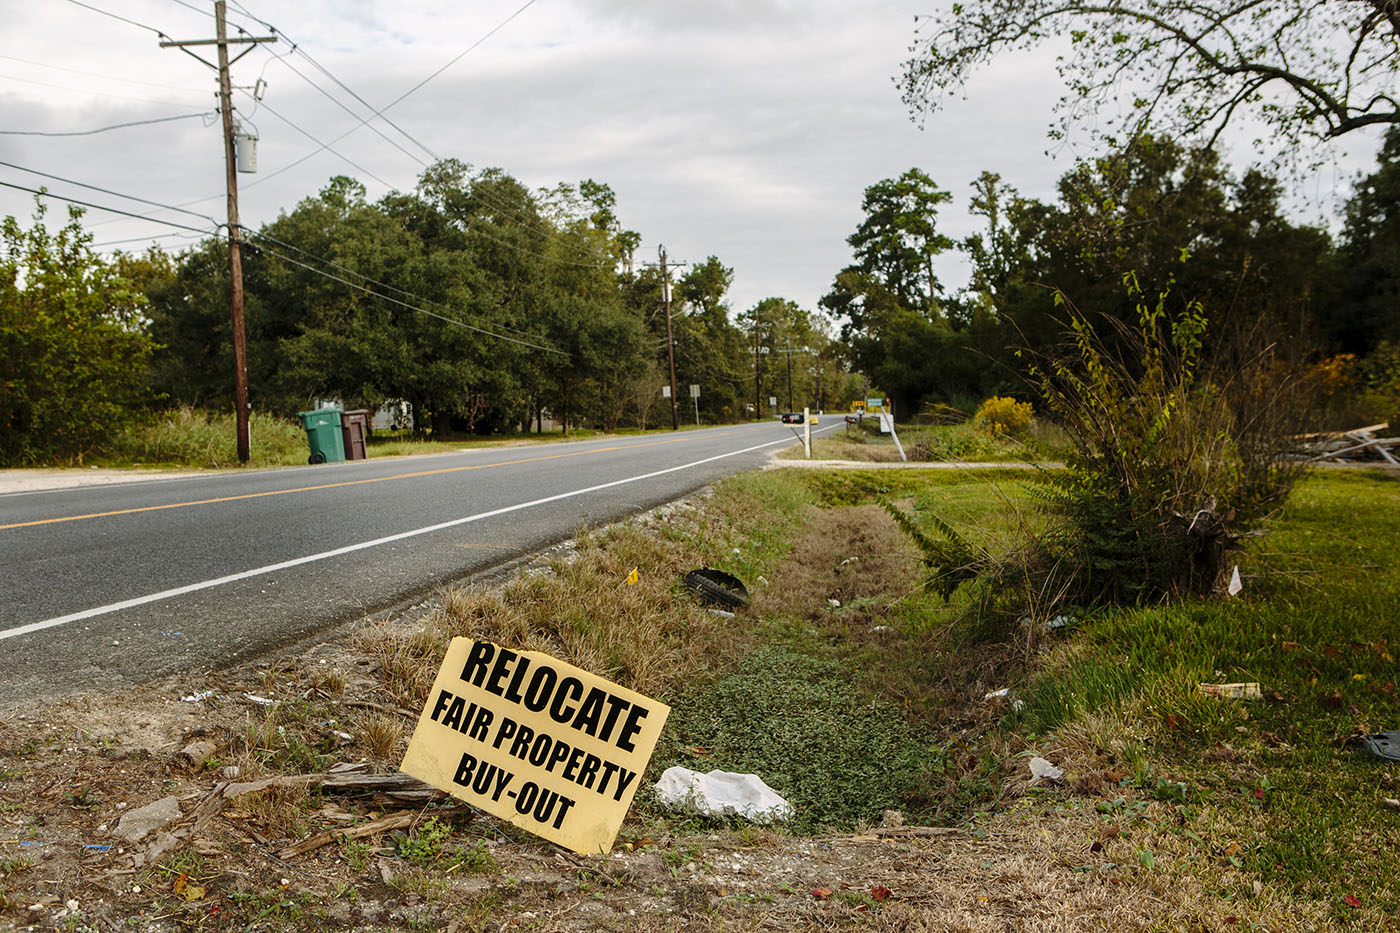 A sign advertising fair property buyouts is posted on the side of a road in the small hamlet of Mossville, Louisiana, Oct. 22, 2015.